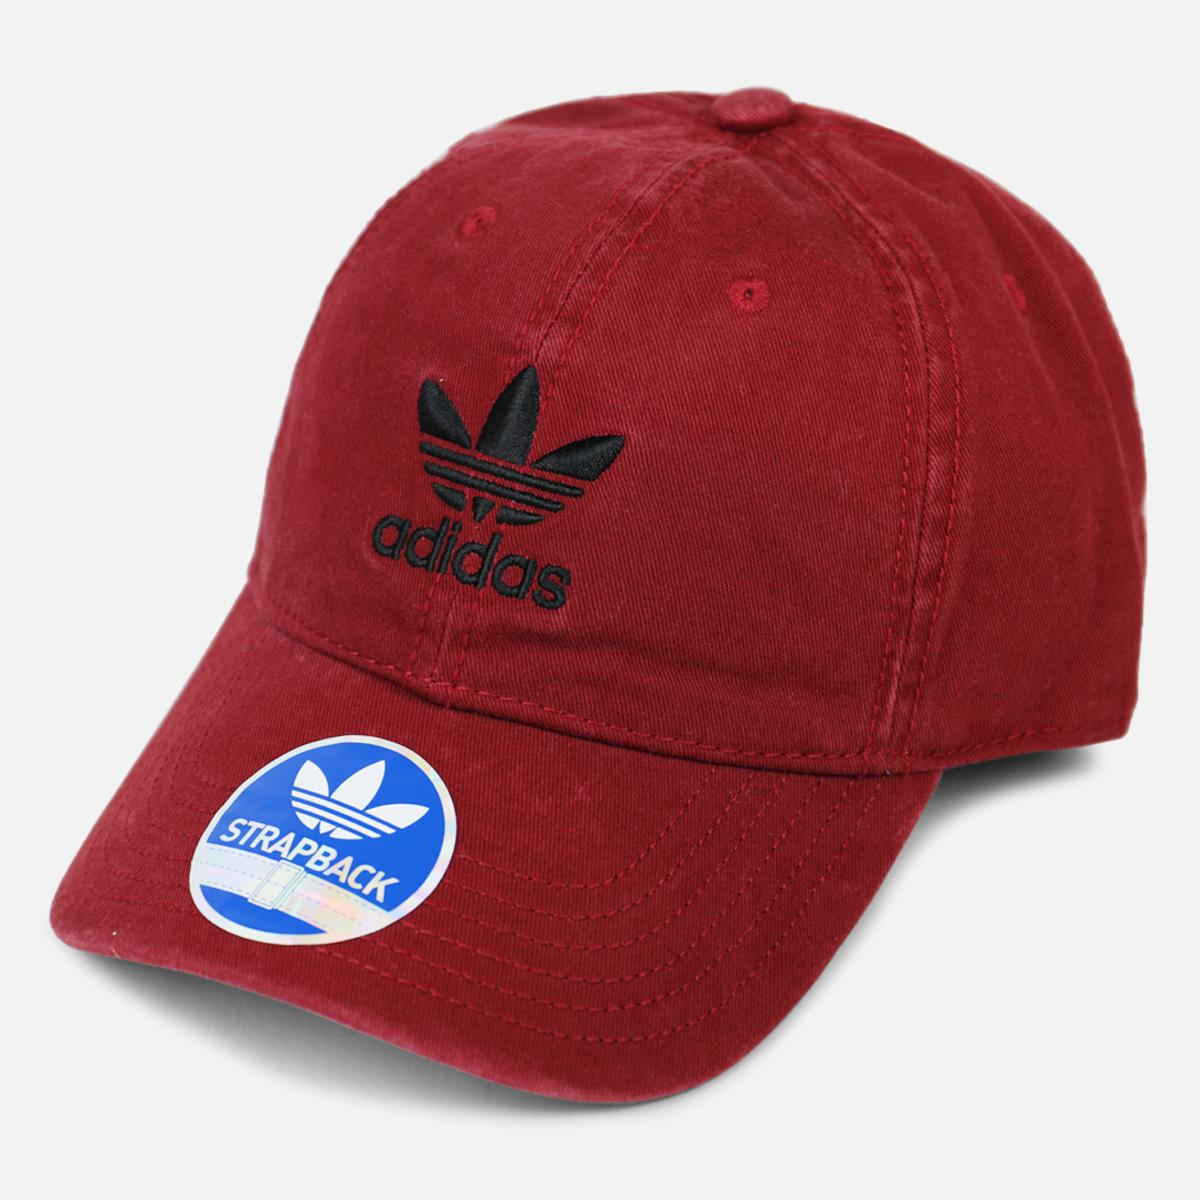 589ae3ab ... wholesale adidas red originals precurved washed strapback hat for men  lyst. view fullscreen 47887 77856